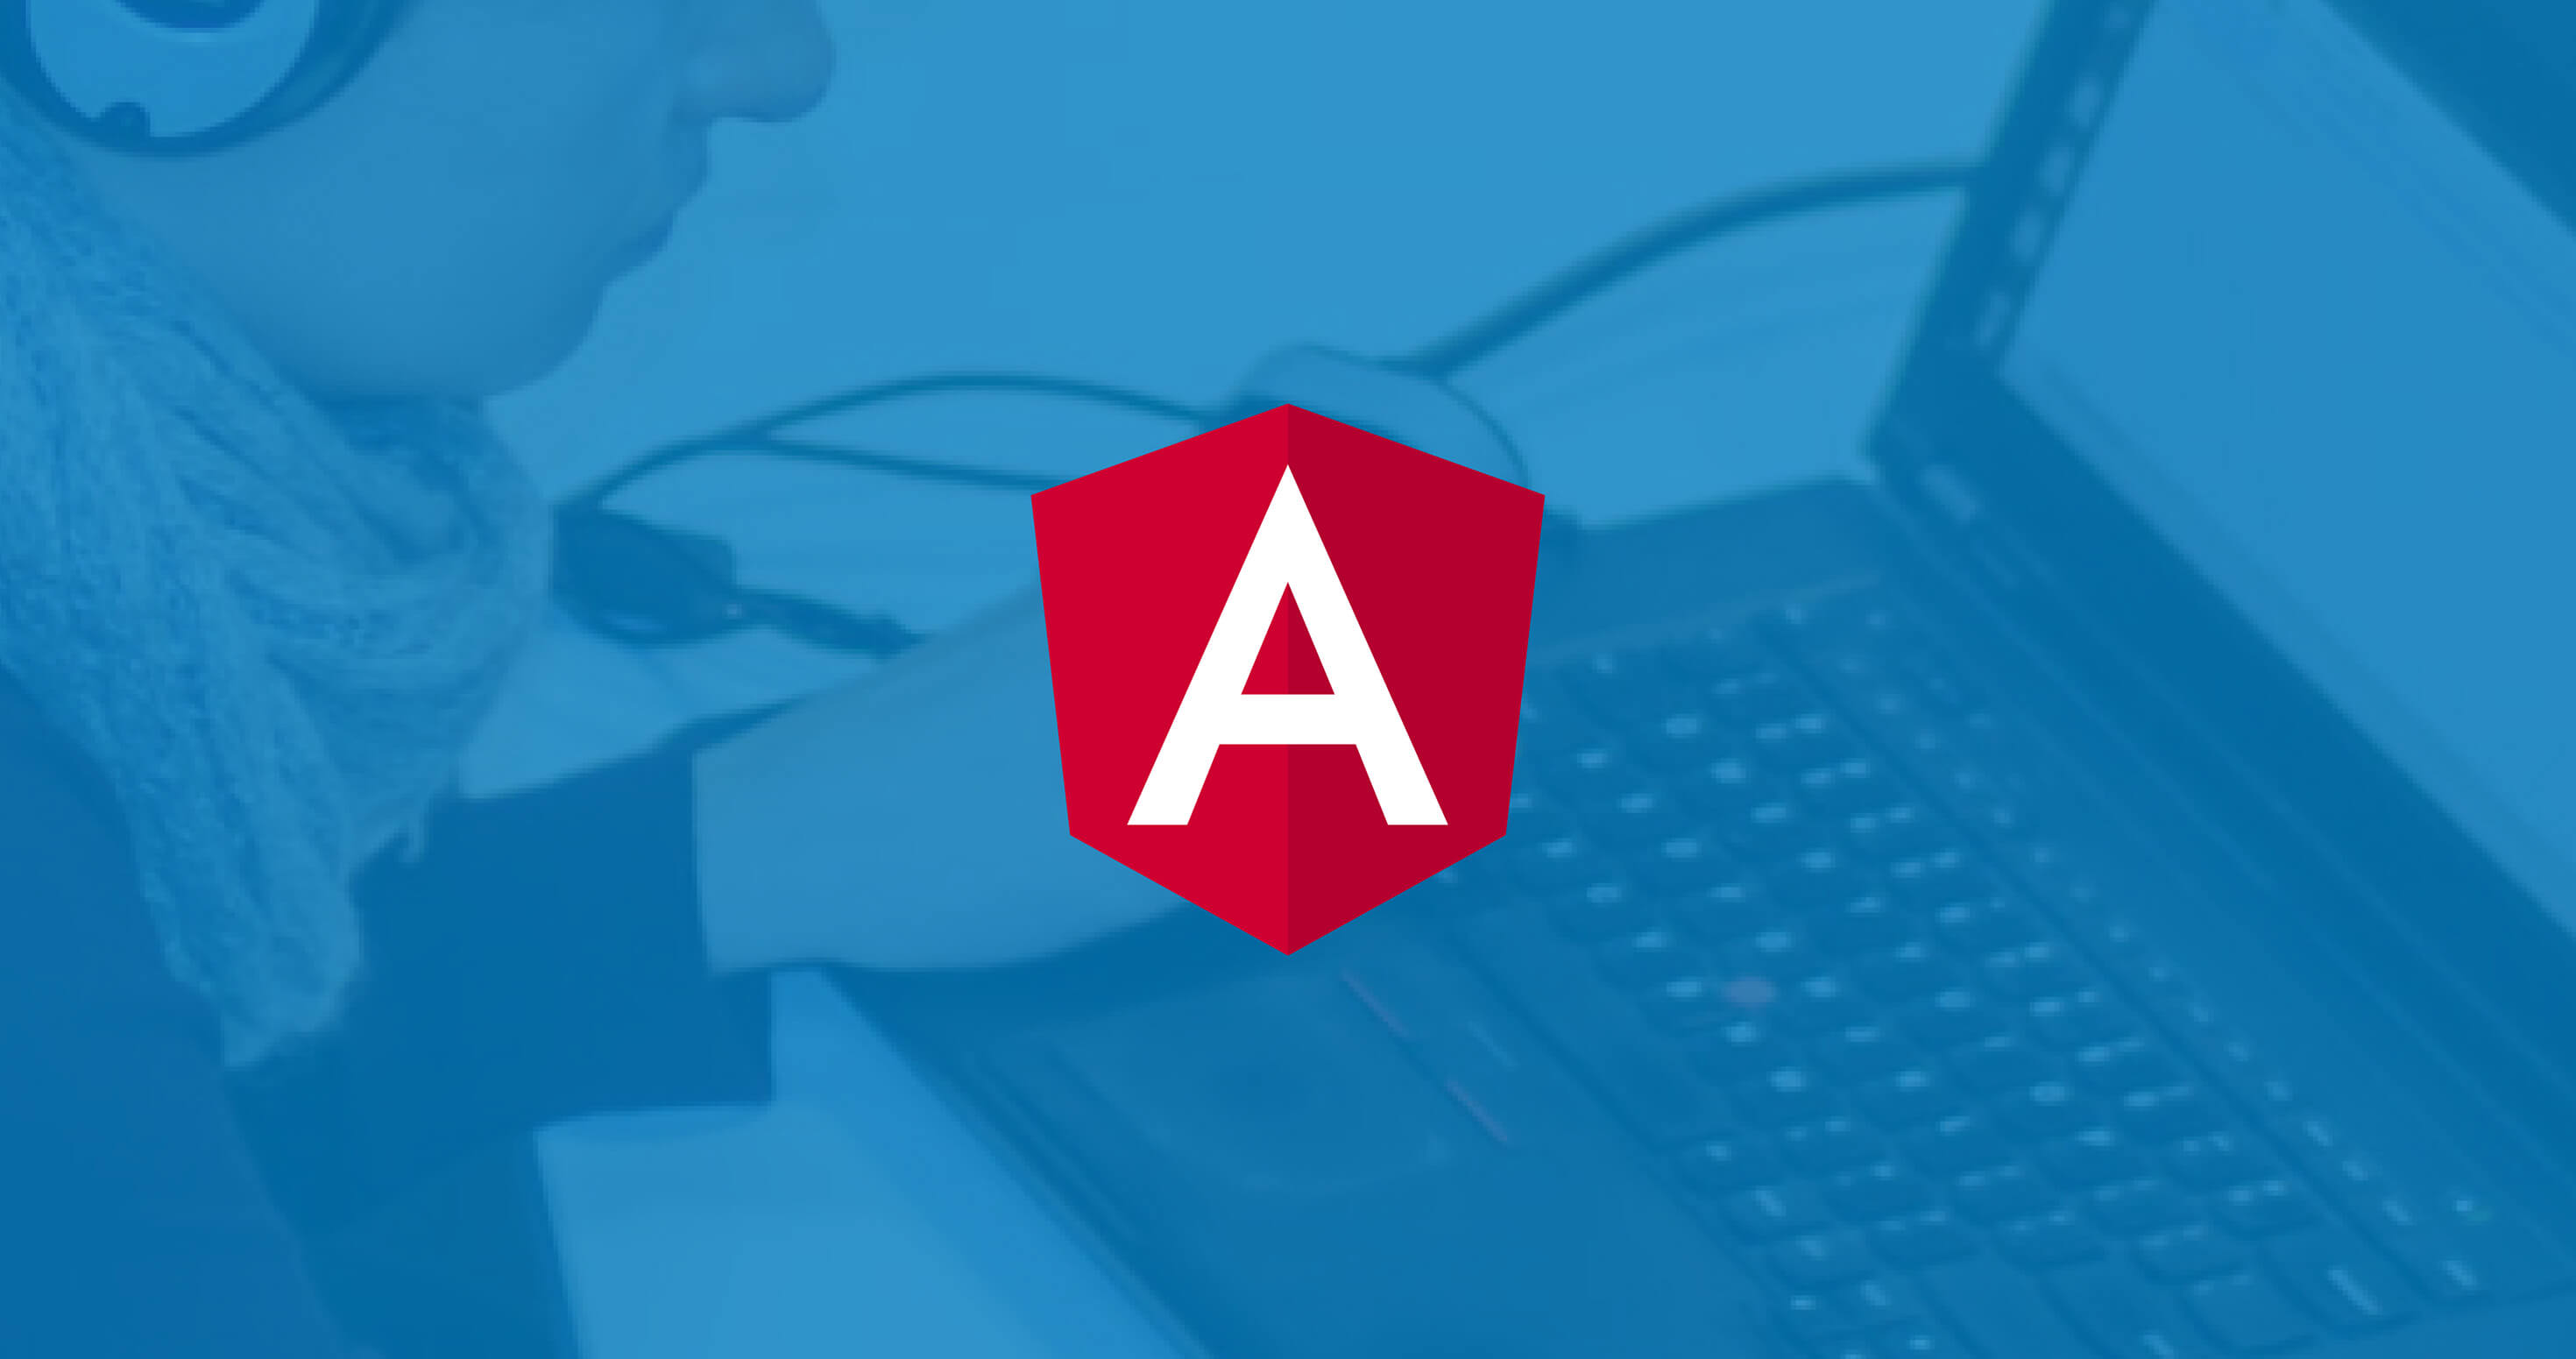 AngularJS Open-Source Frontend Application Framework